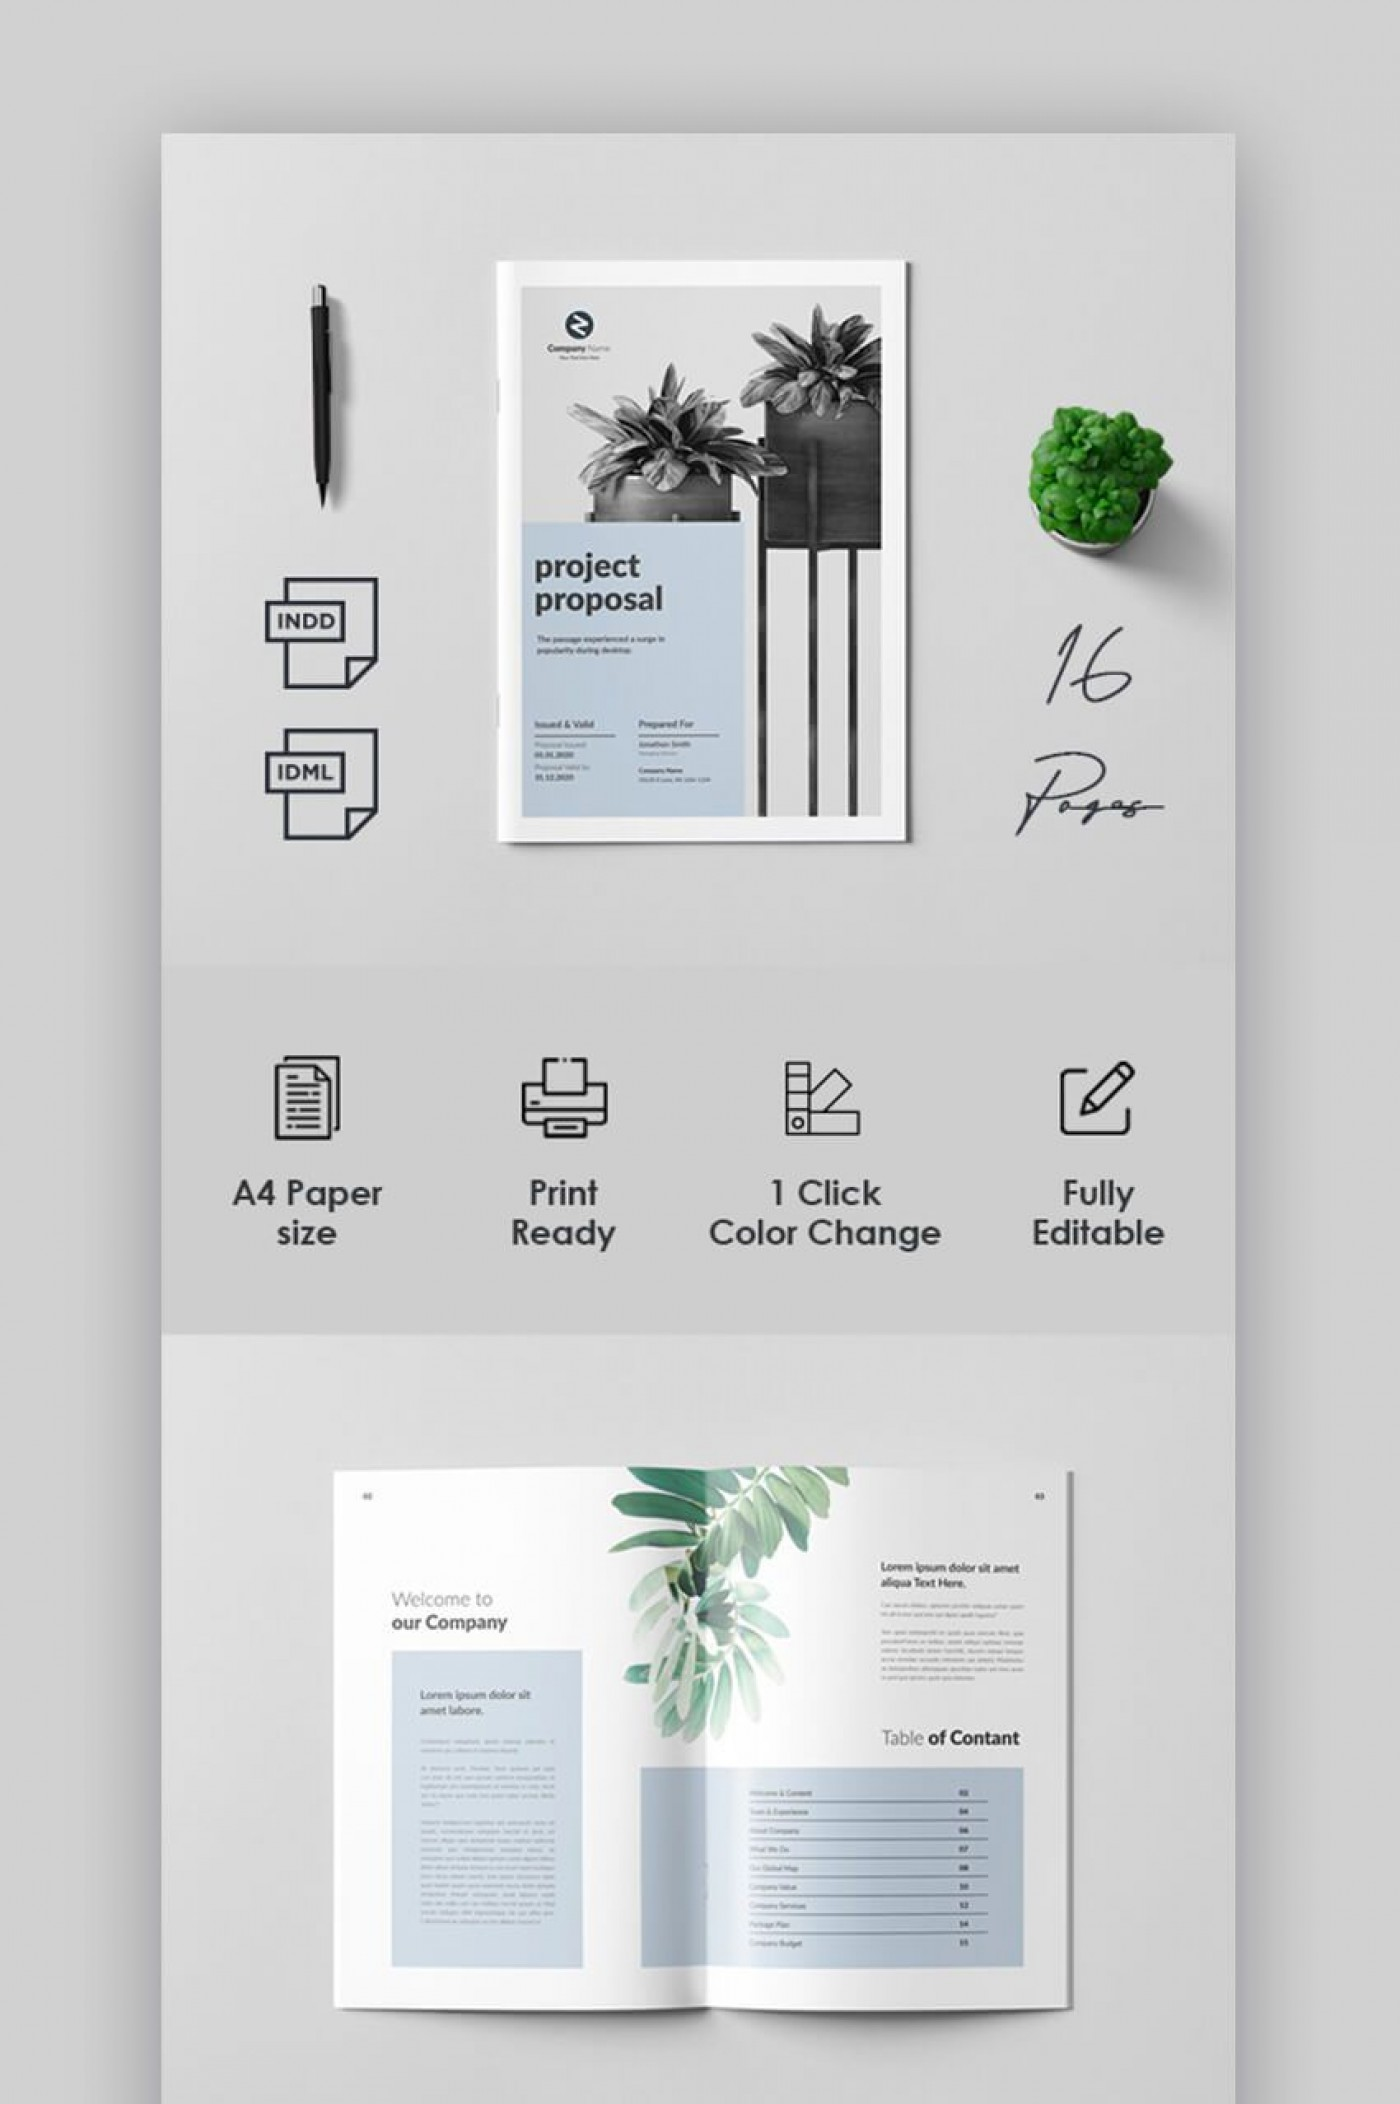 006 Staggering Social Media Proposal Template 2019 Sample 1400